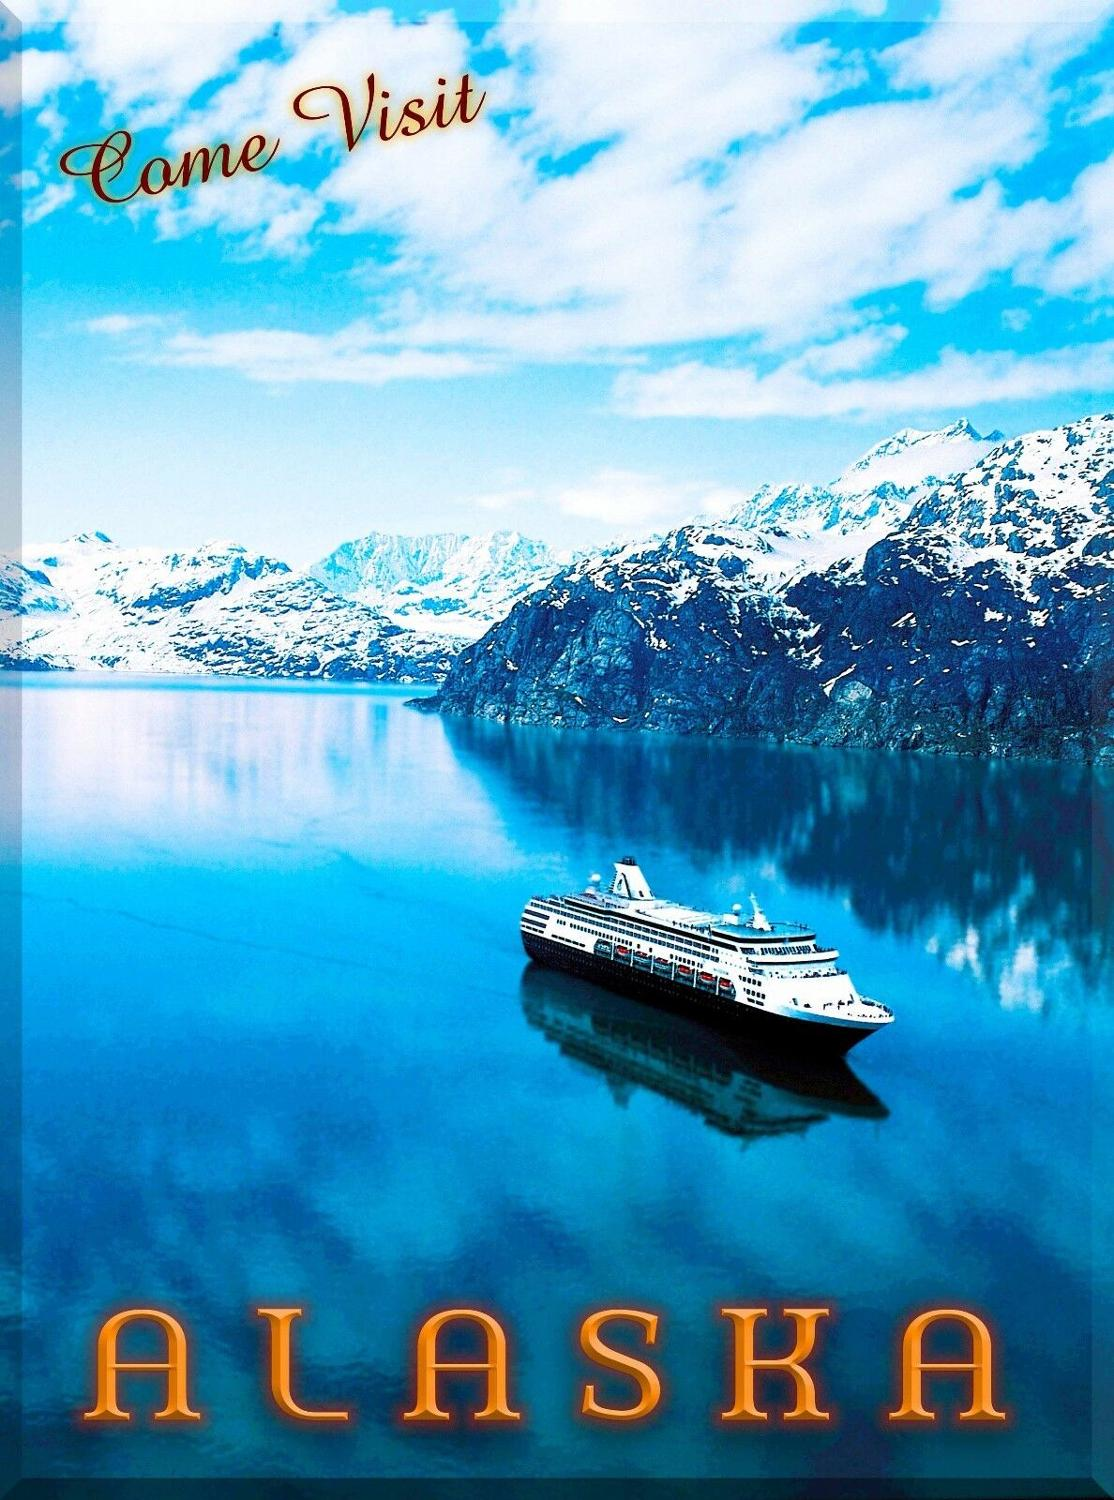 Come Visit Alaska Cruise United States Travel Advertisement Wall Sticker Silk Poster Art Light Canvas Home Decoration image